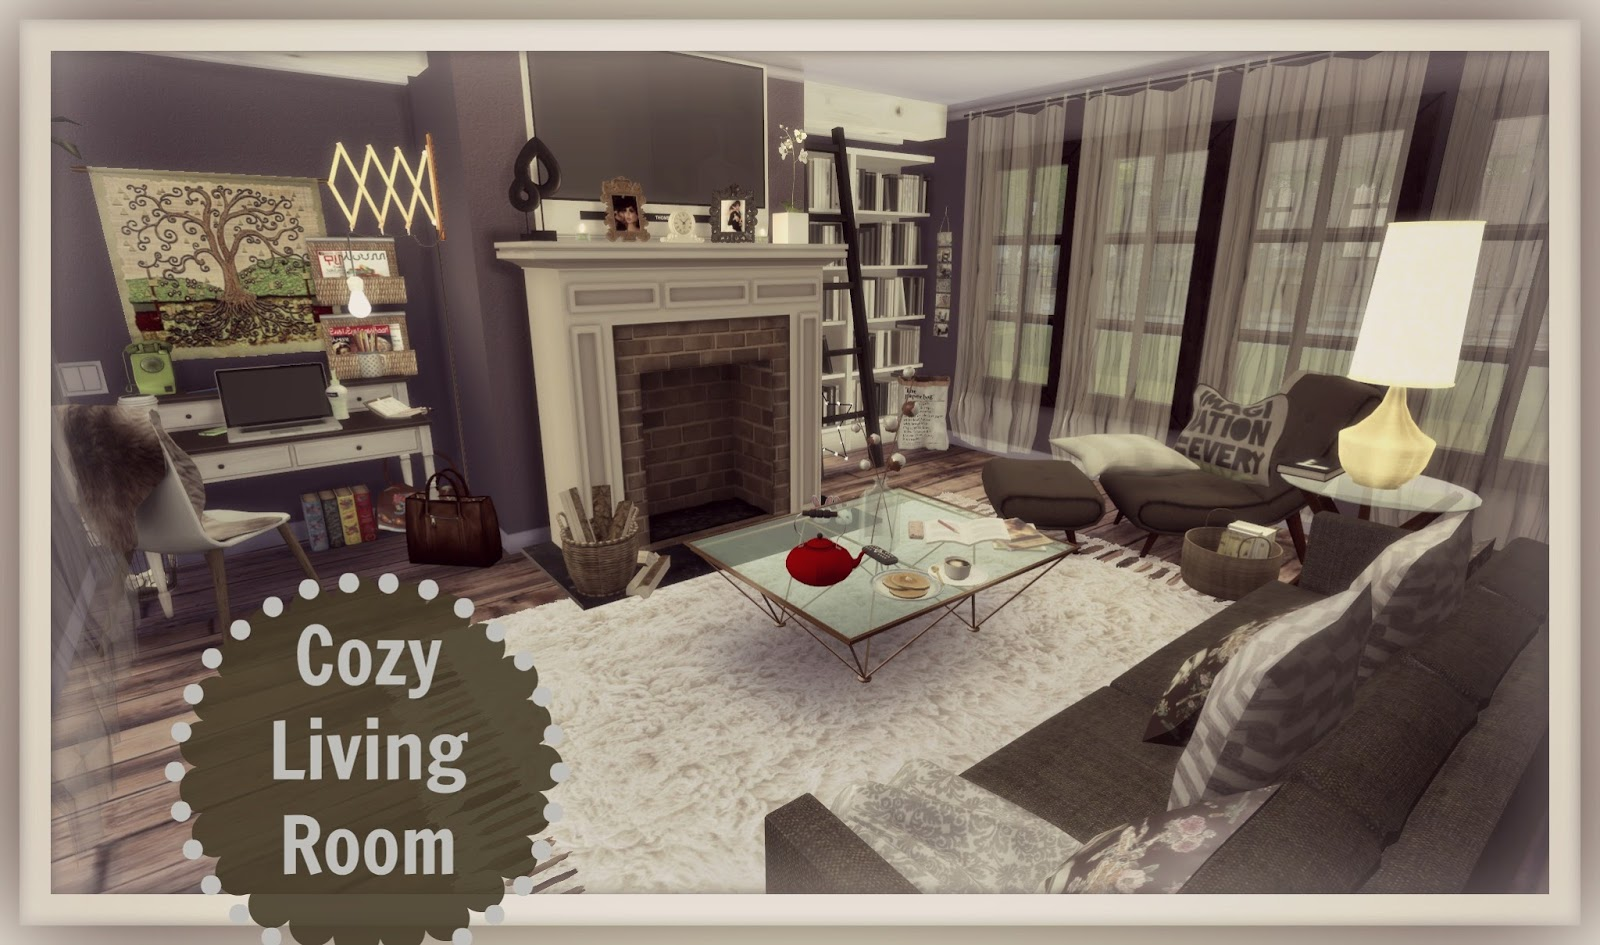 Sims 4 cozy living room dinha for Living room ideas sims 3